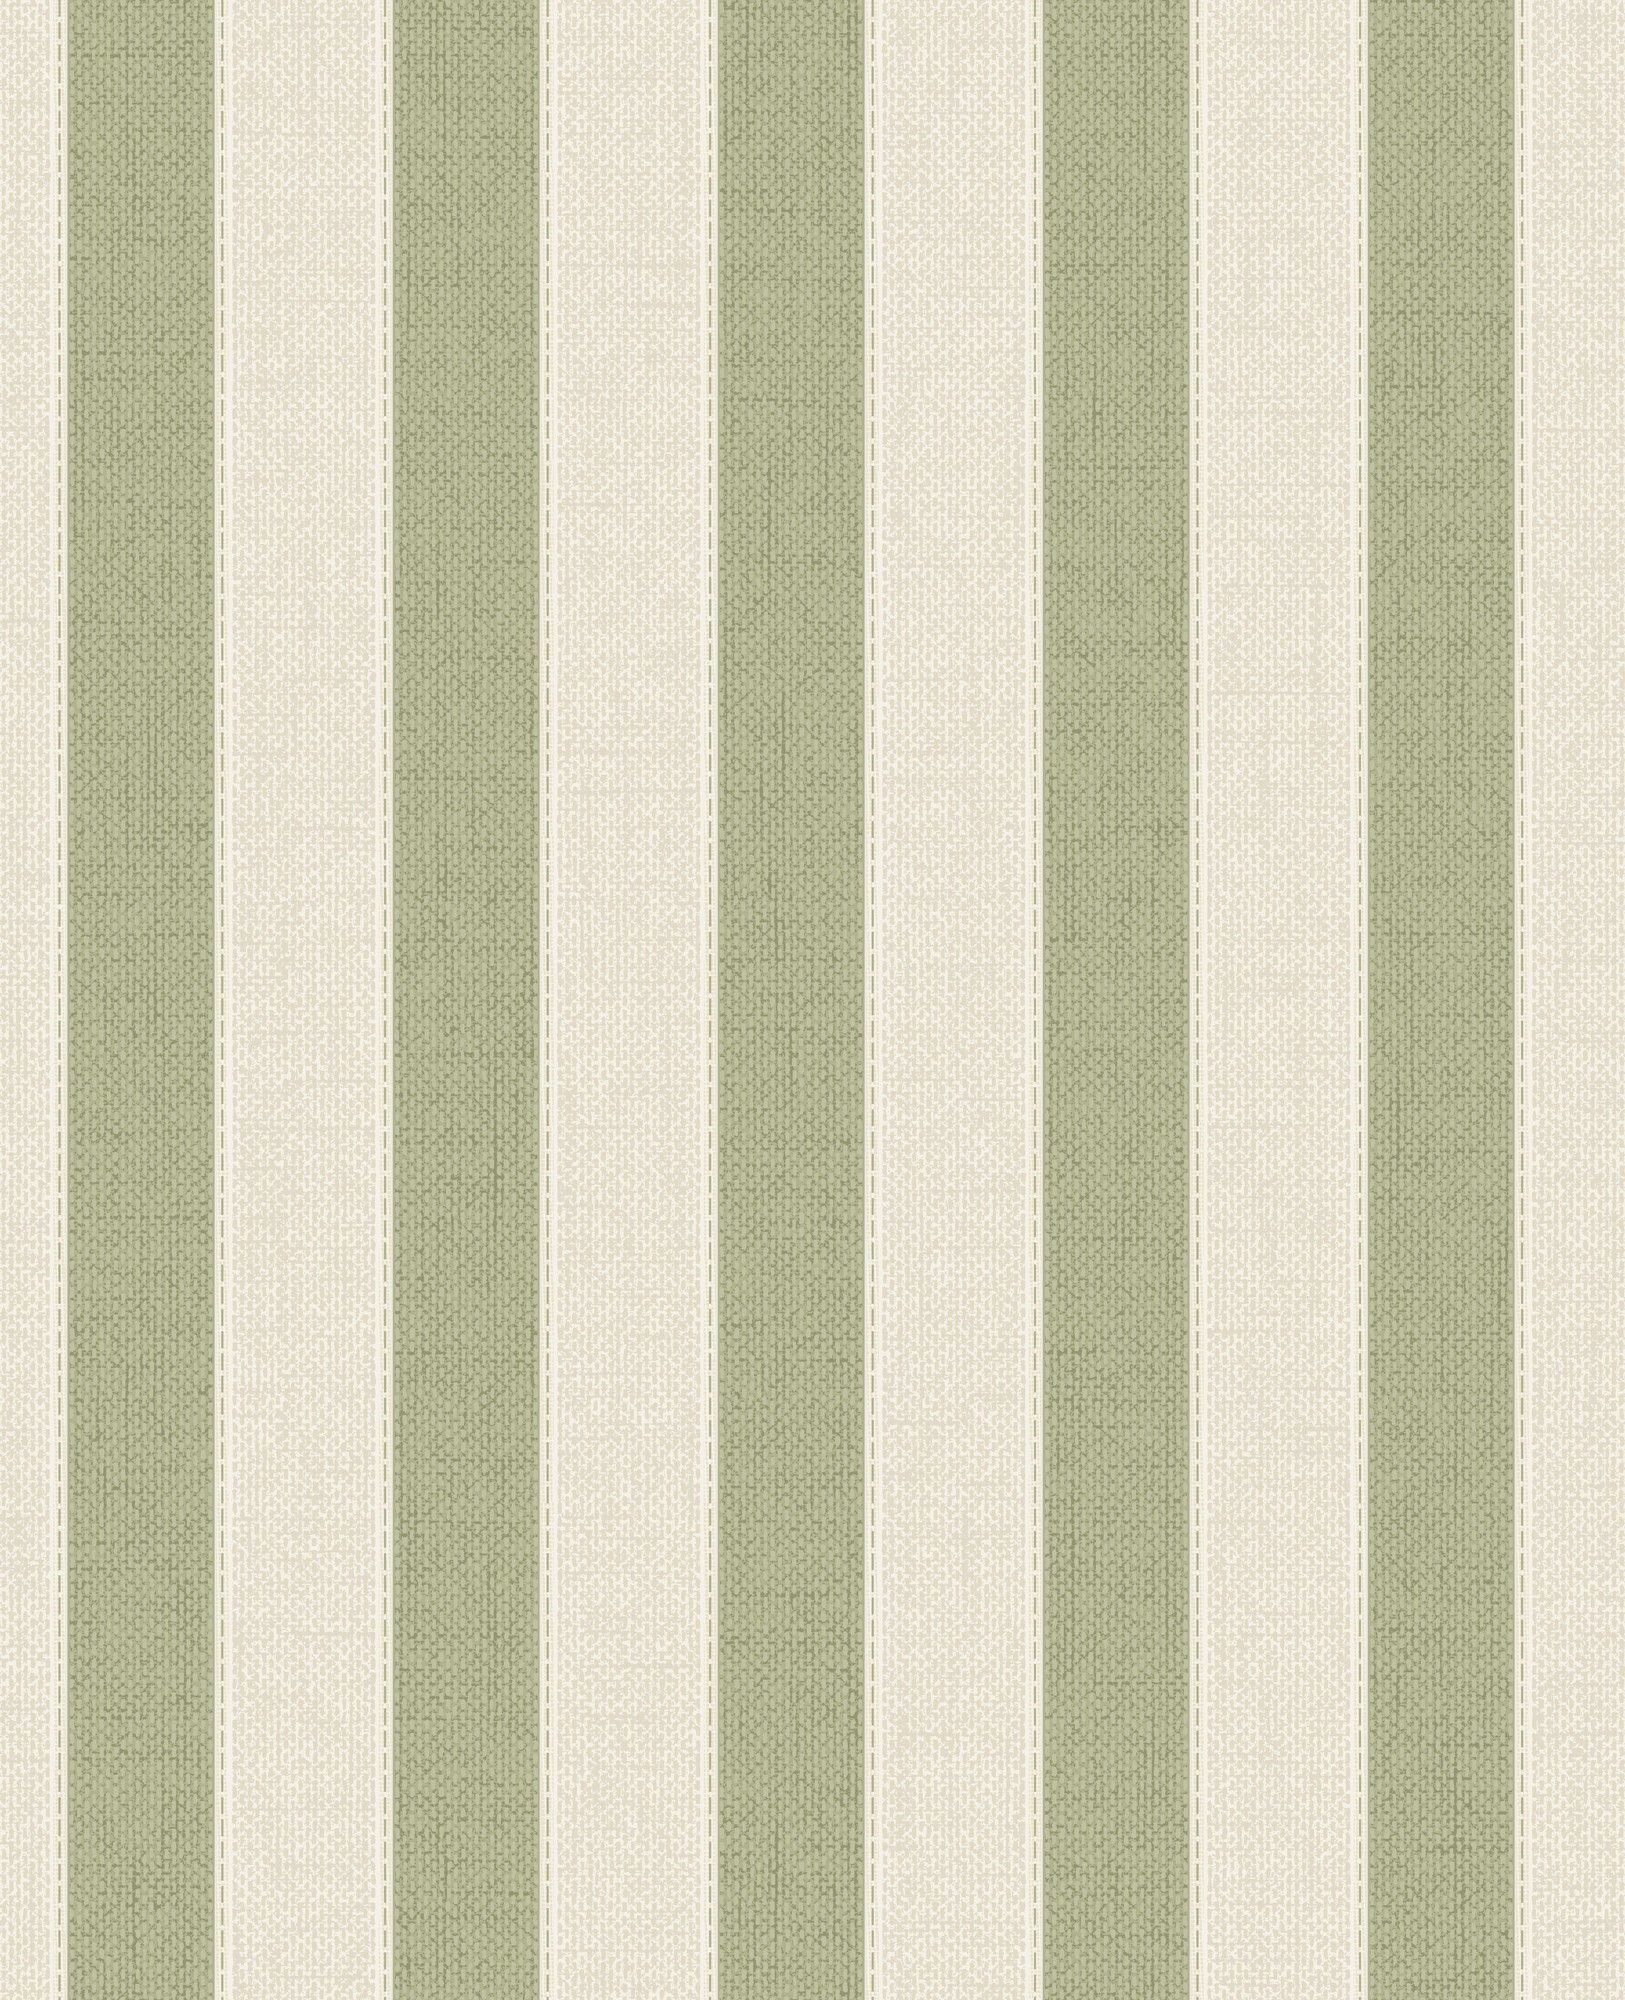 Olevia Ticking 33 X 20 Stripes Wallpaper Pareti A Righe E